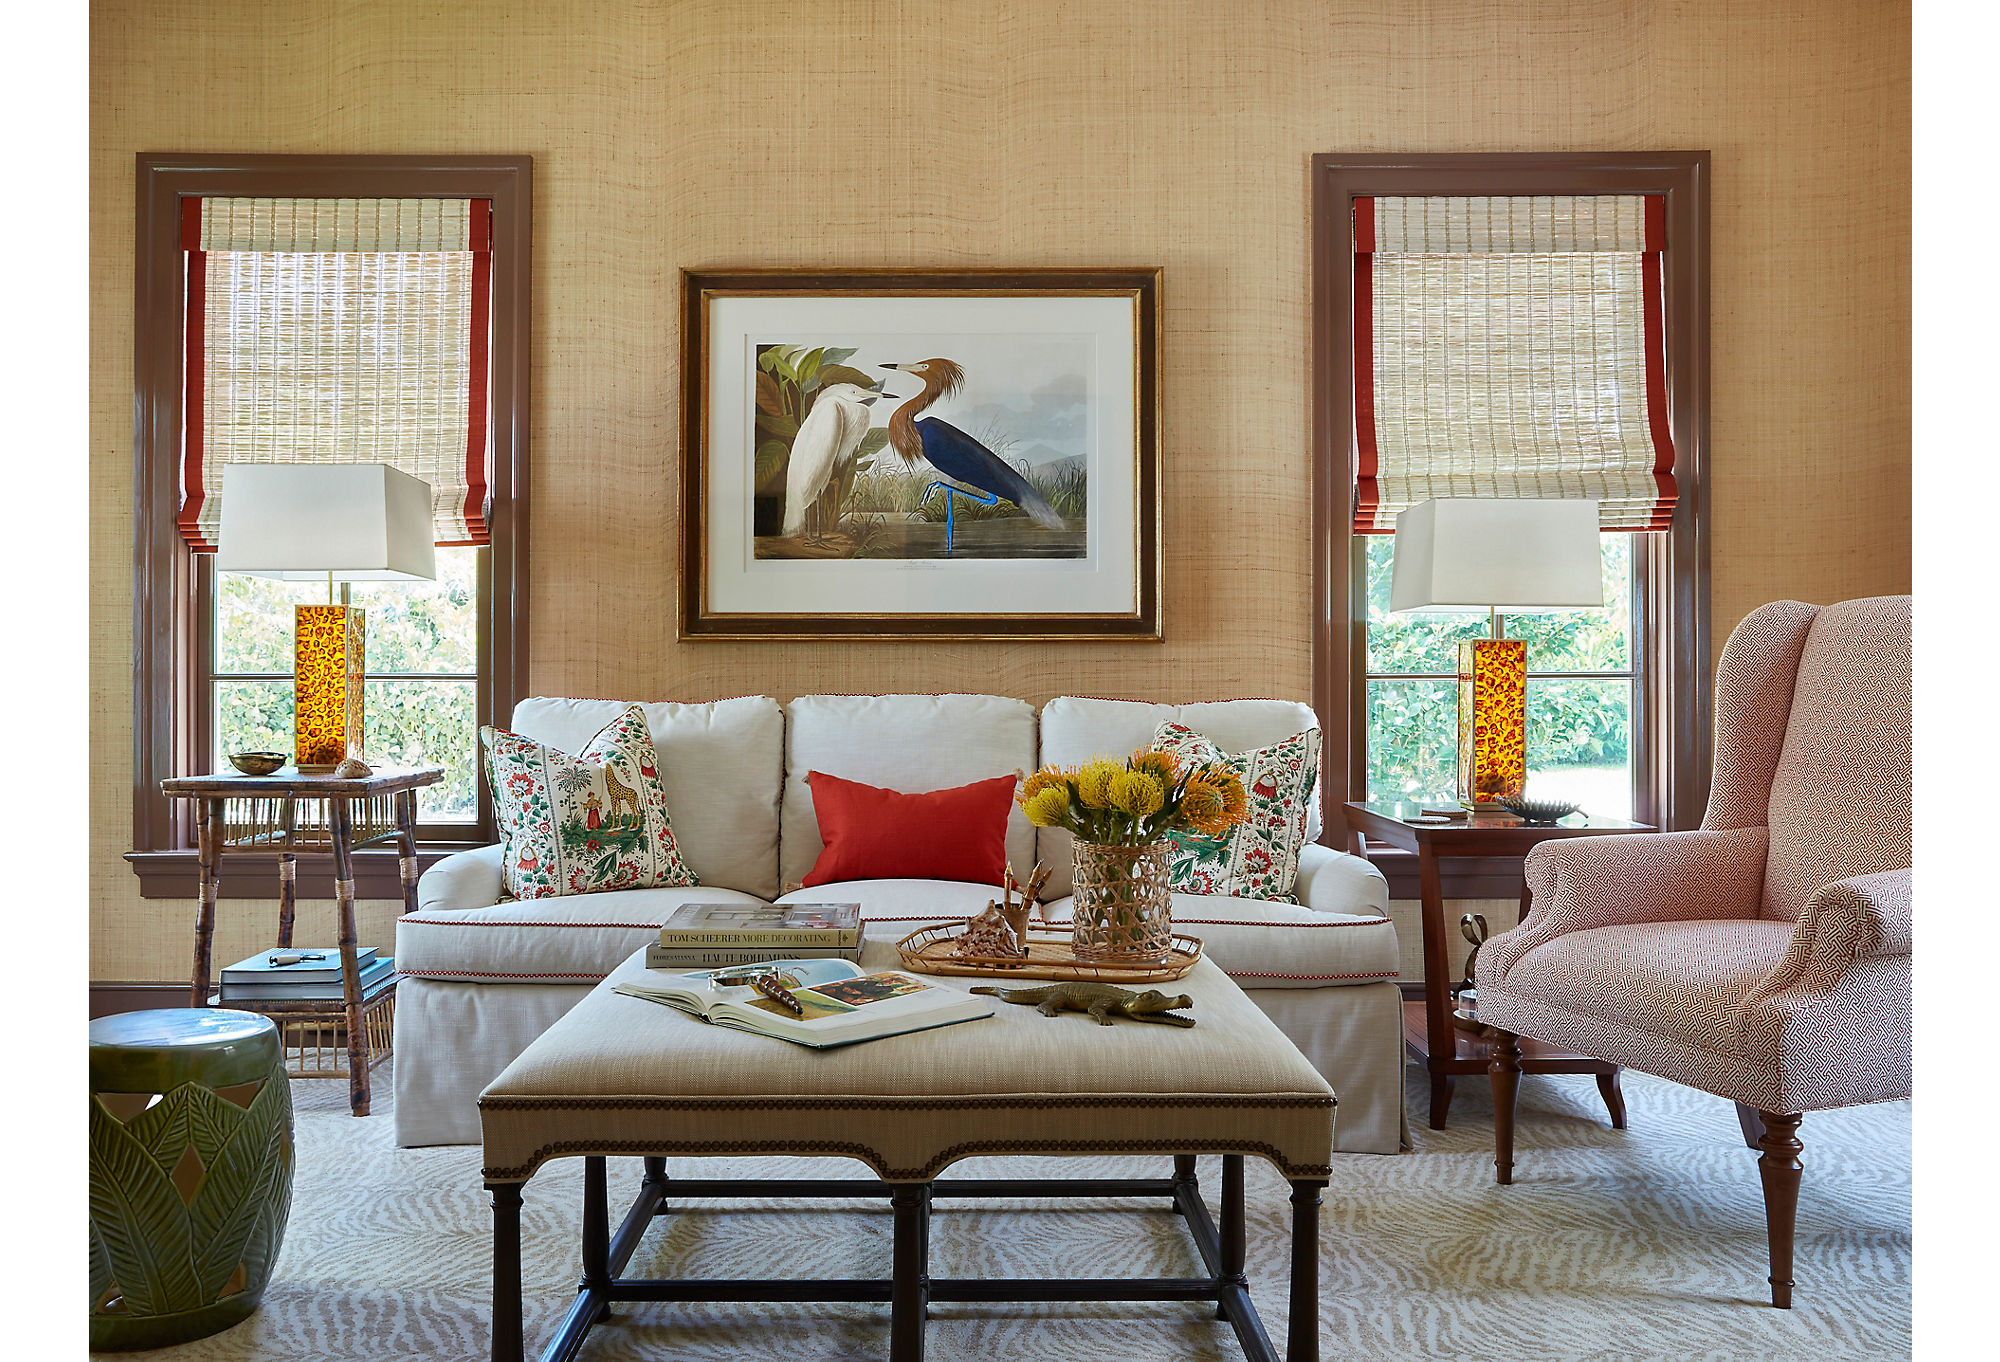 Classic Audubon prints throughout the home are classic touches of Old Florida, a time before major development. They're wonderful reminders of the raw, natural beauty the Sunshine State still holds.